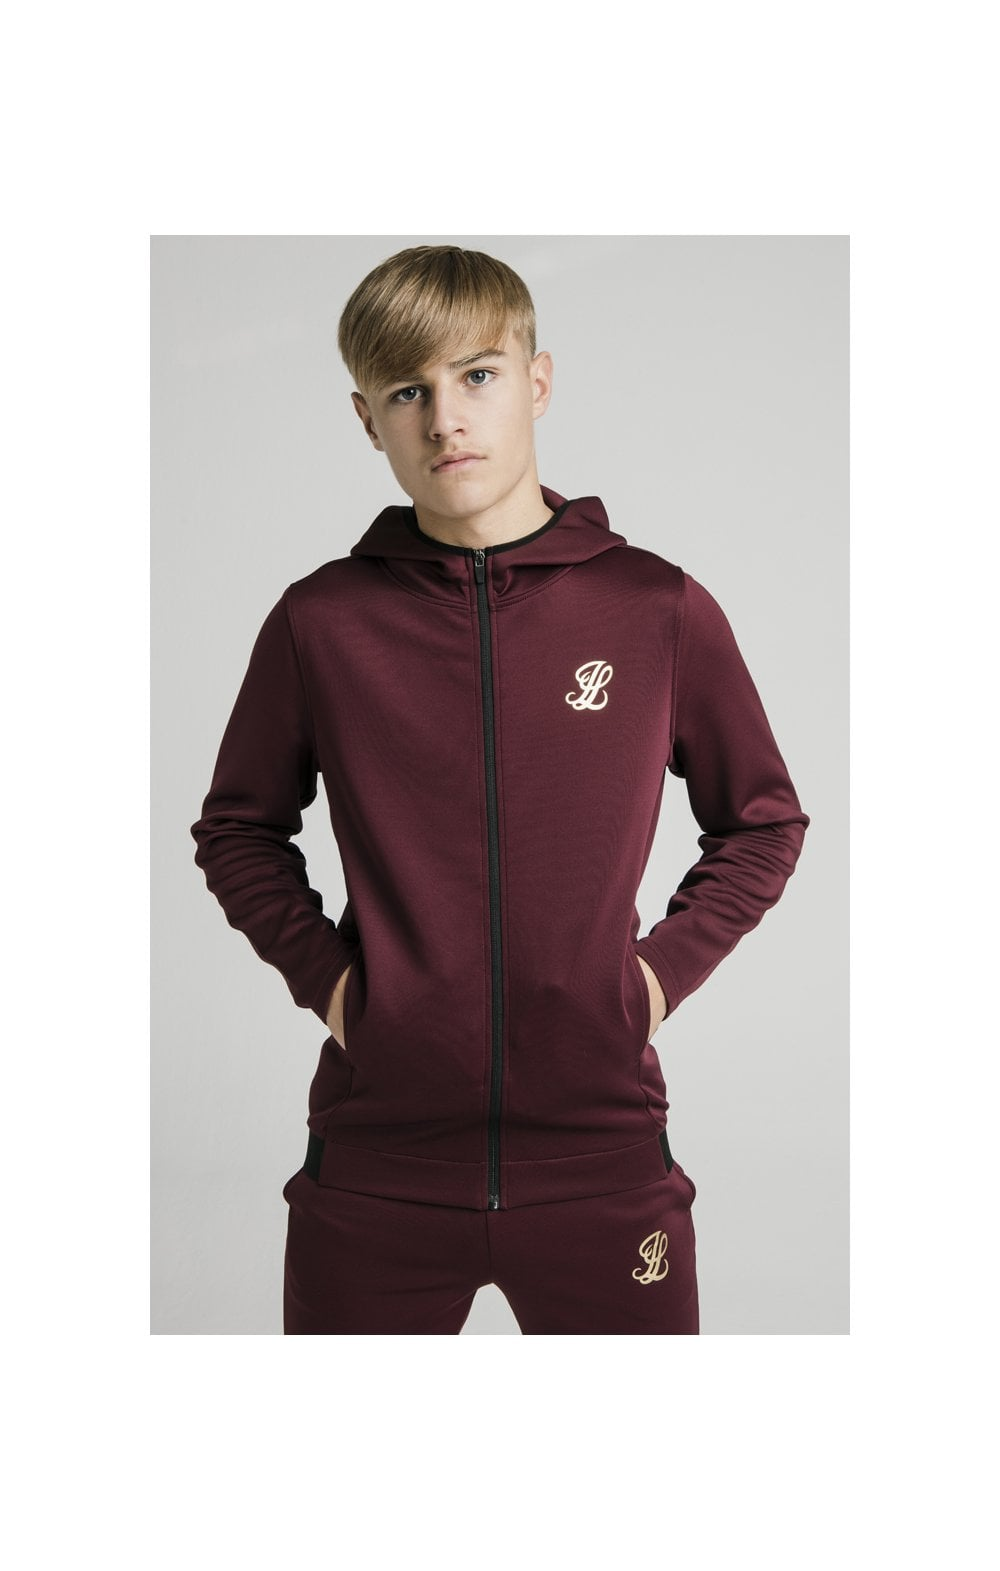 Illusive London Agility Zip Through Hoodie - Burgundy